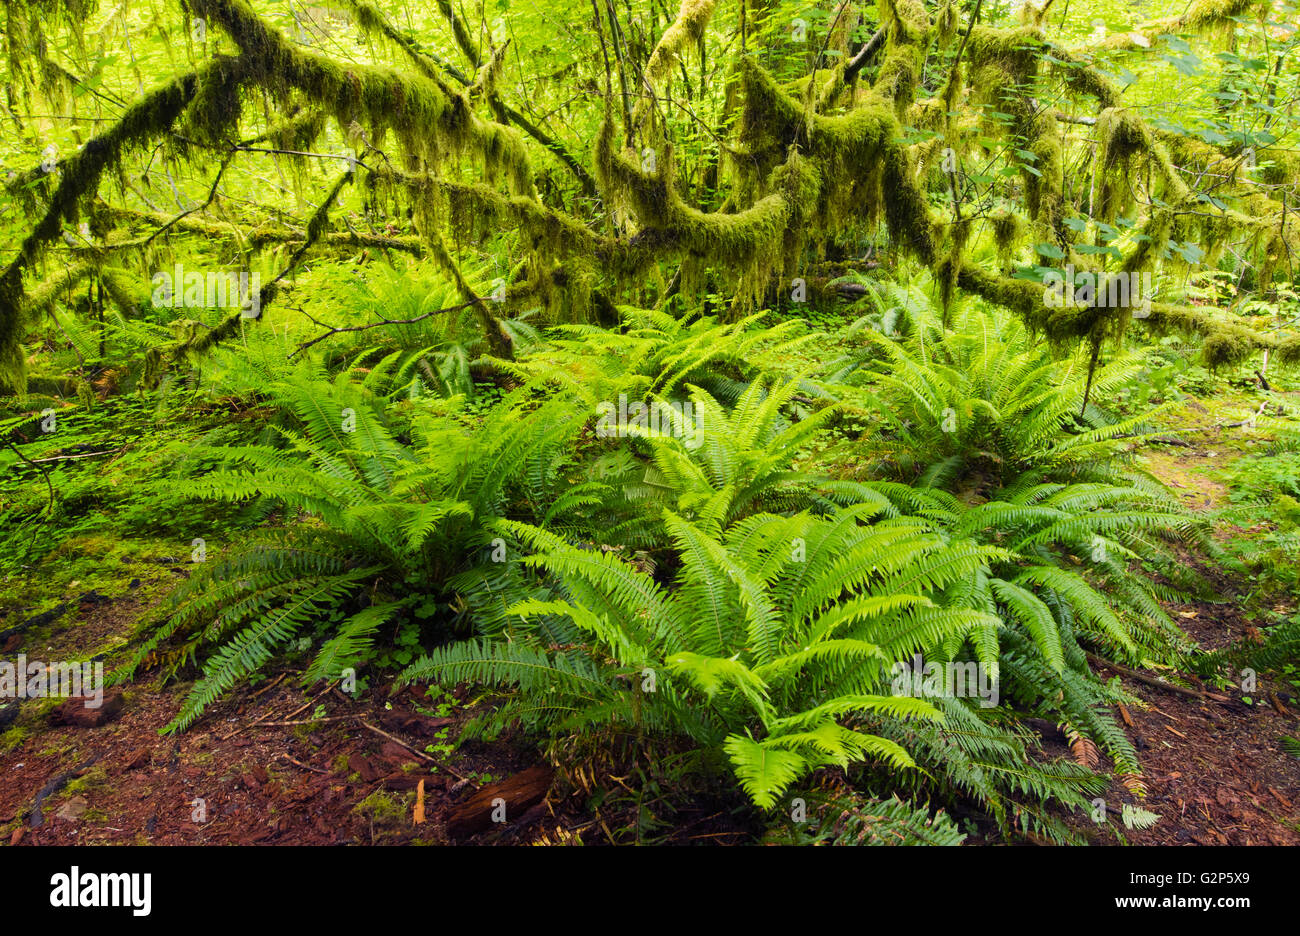 Sword ferns and moss-covered Vine Maple, Hall of Mosses, Hoh river valley, Olympic National Park, Washington, May - Stock Image